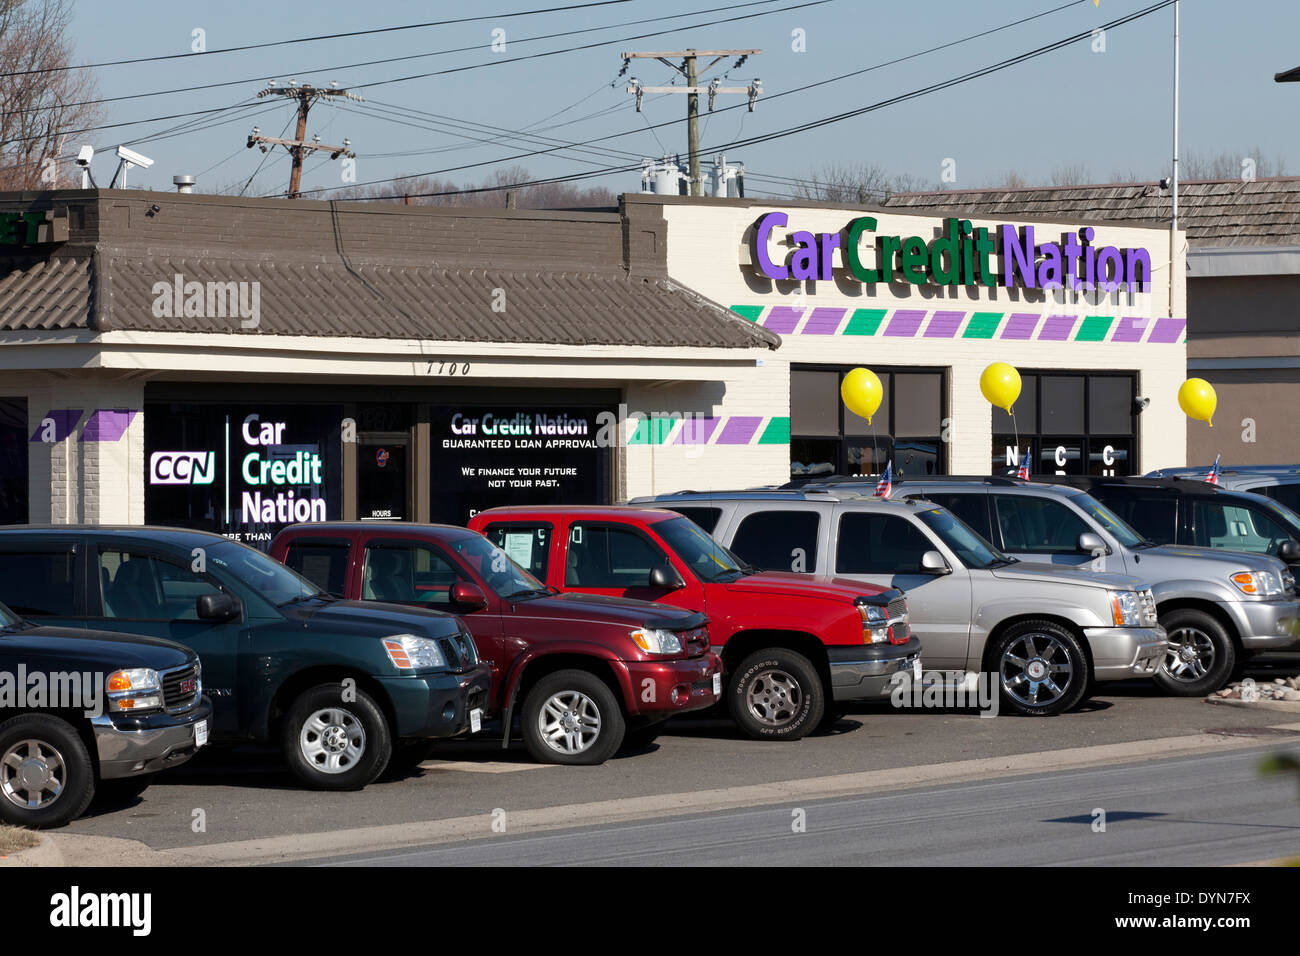 Used Car For Sale, Usa Stock Photos & Used Car For Sale, Usa Stock ...